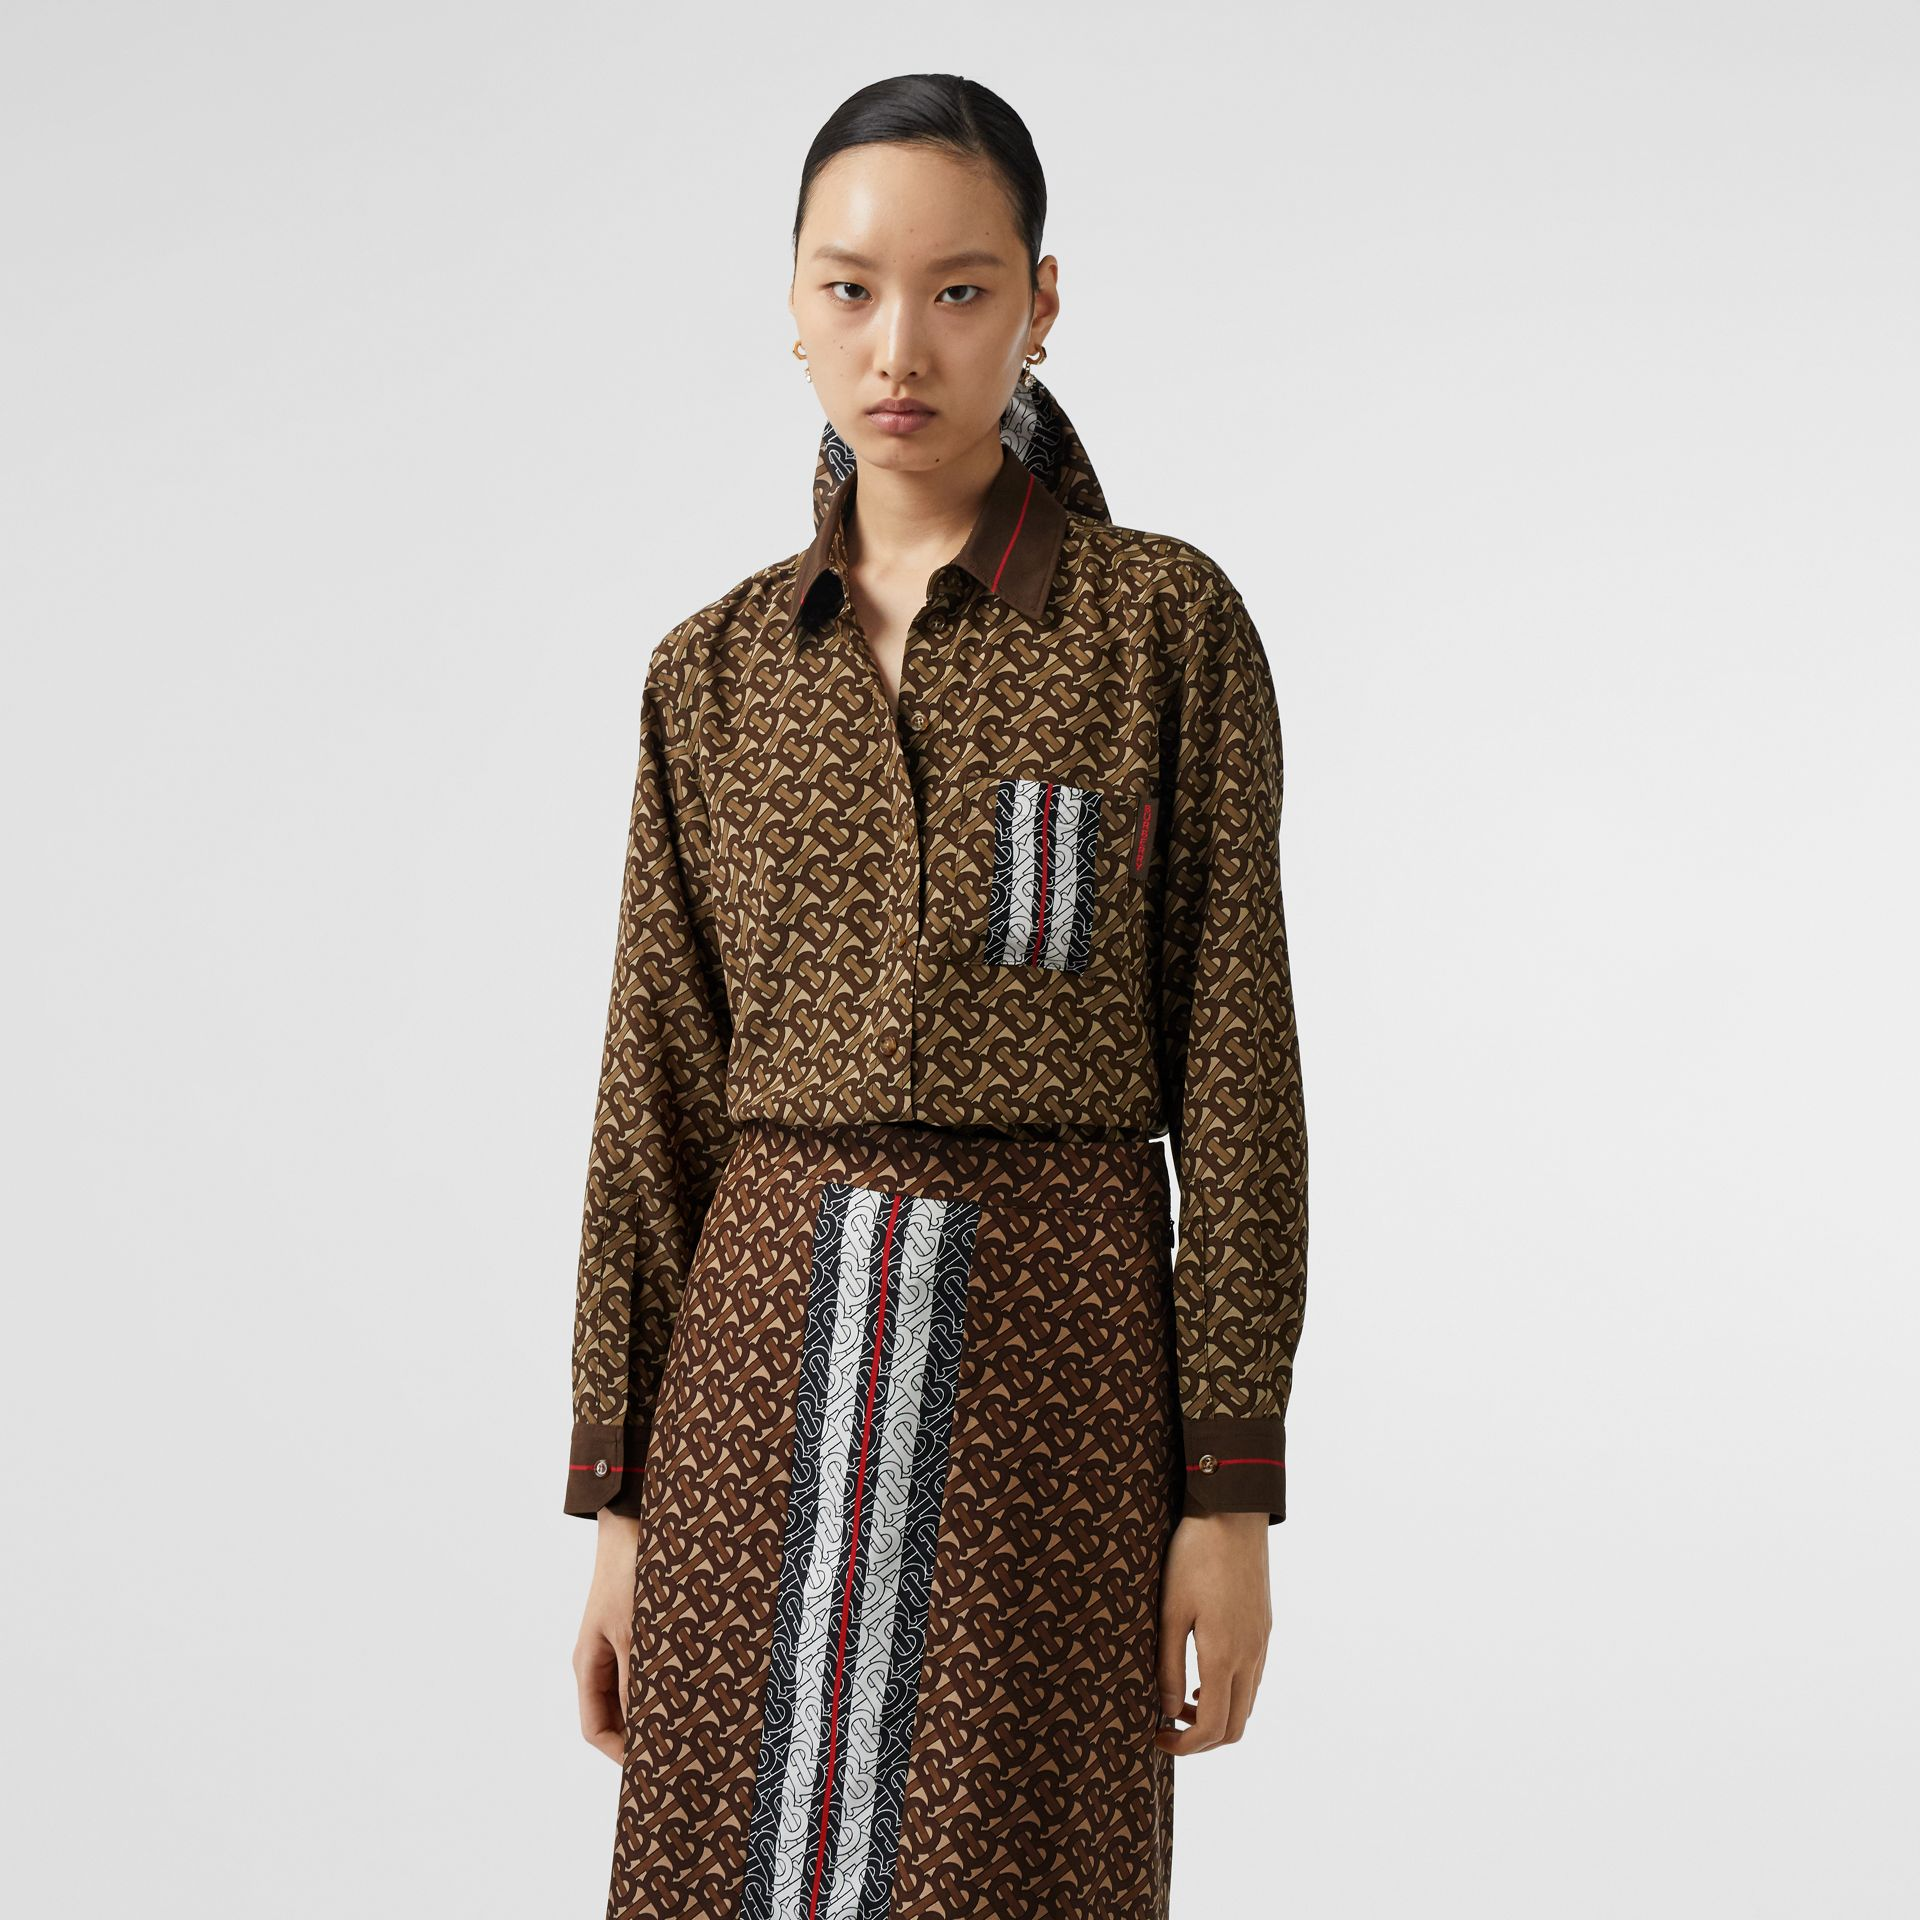 Monogram Stripe Print Silk Oversized Shirt in Bridle Brown - Women | Burberry United Kingdom - gallery image 4